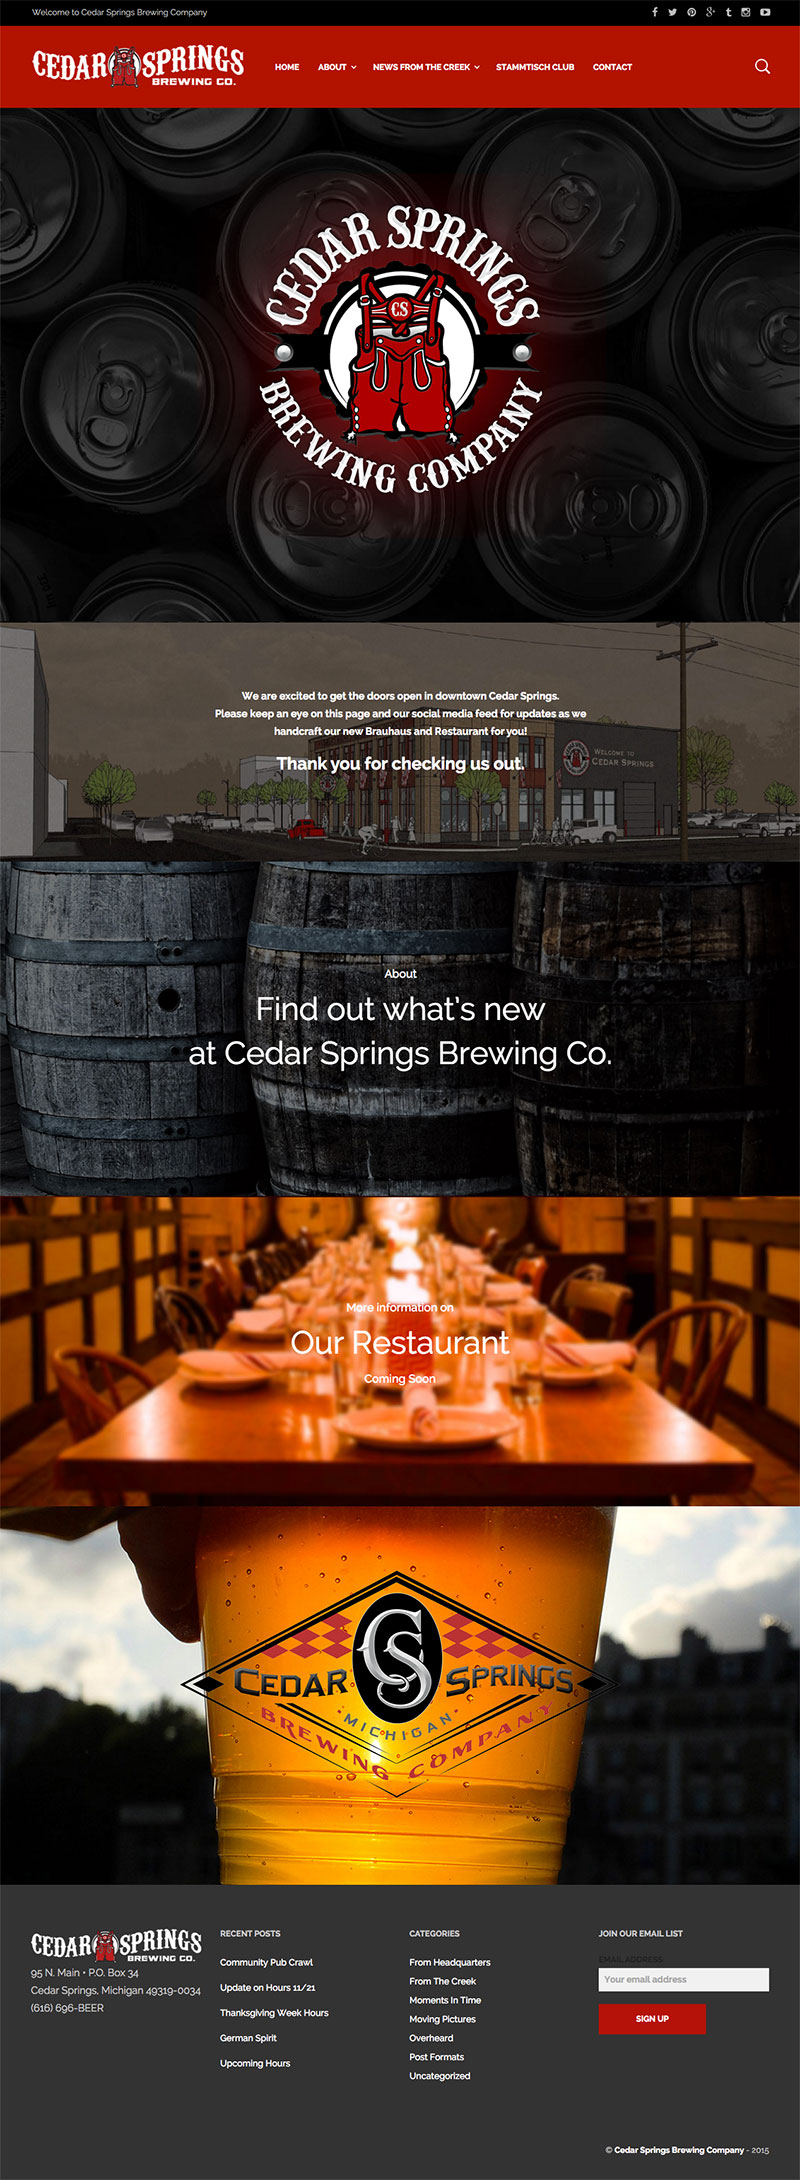 Cedar Springs Brewing Company homepage